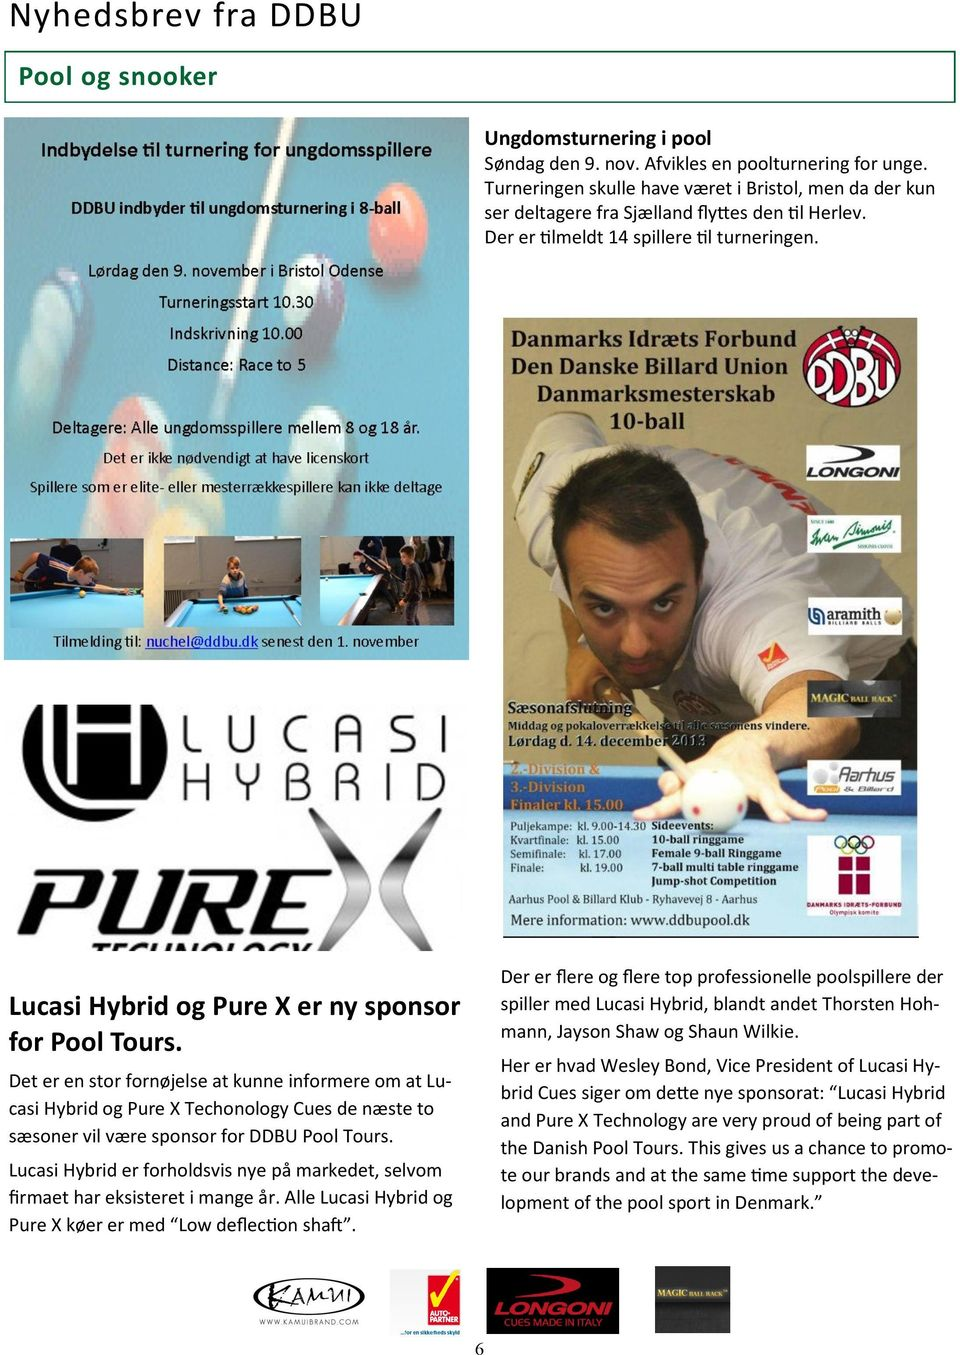 Lucasi Hybrid og Pure X er ny sponsor for Pool Tours.